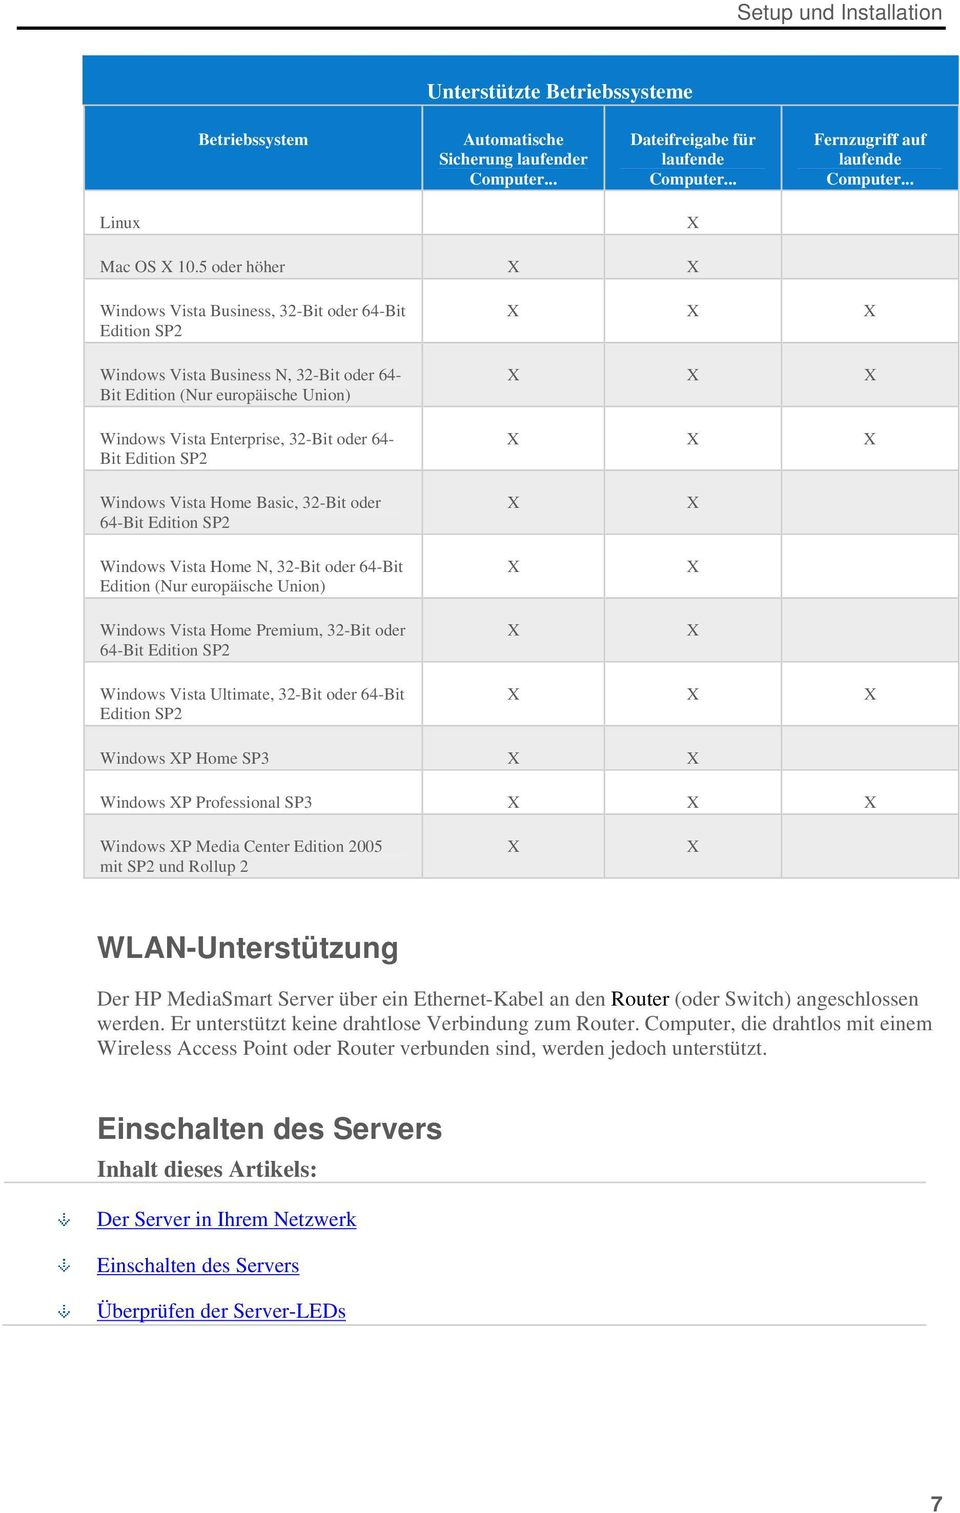 5 oder höher X X Windows Vista Business, 32-Bit oder 64-Bit Edition SP2 Windows Vista Business N, 32-Bit oder 64- Bit Edition (Nur europäische Union) Windows Vista Enterprise, 32-Bit oder 64- Bit